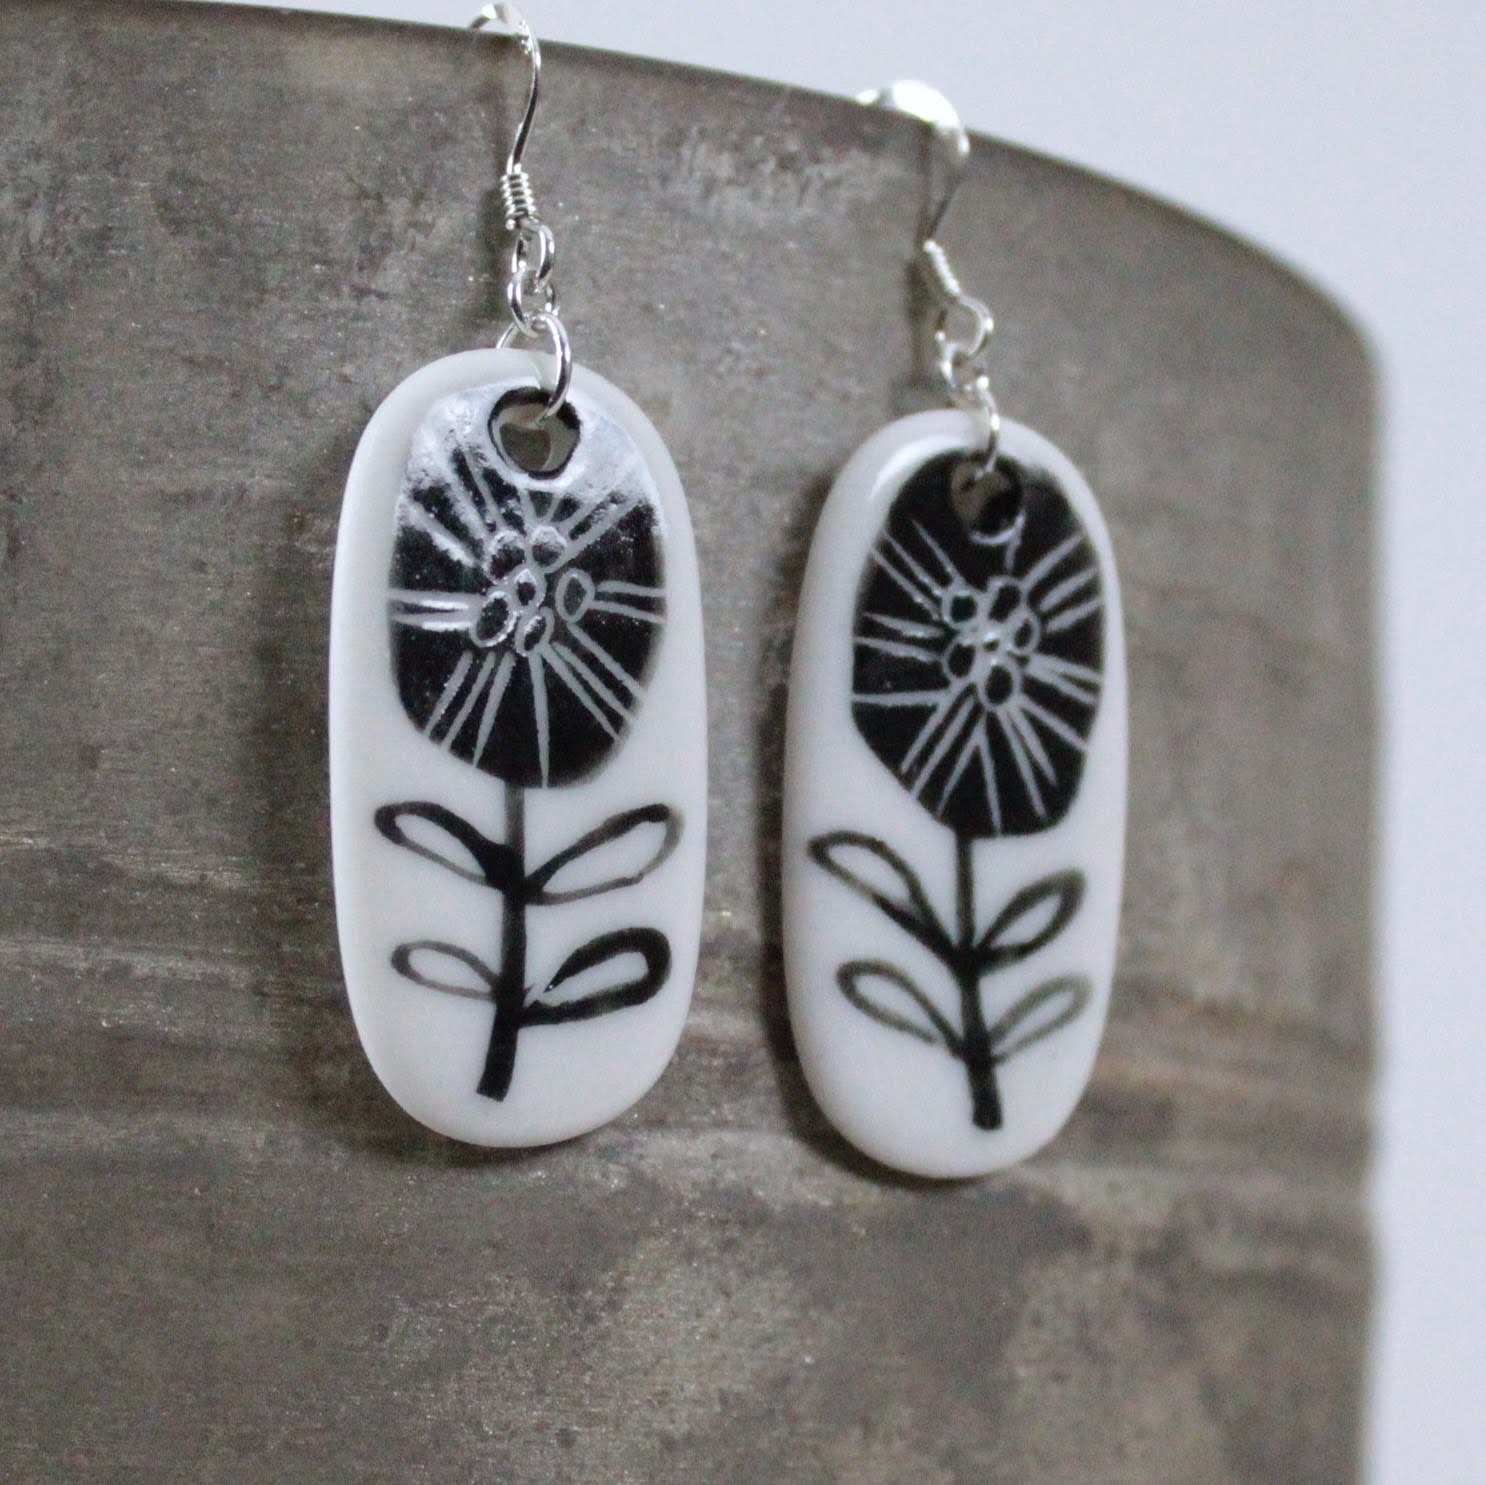 Monochrome Flower Porcelain Drop Earrings